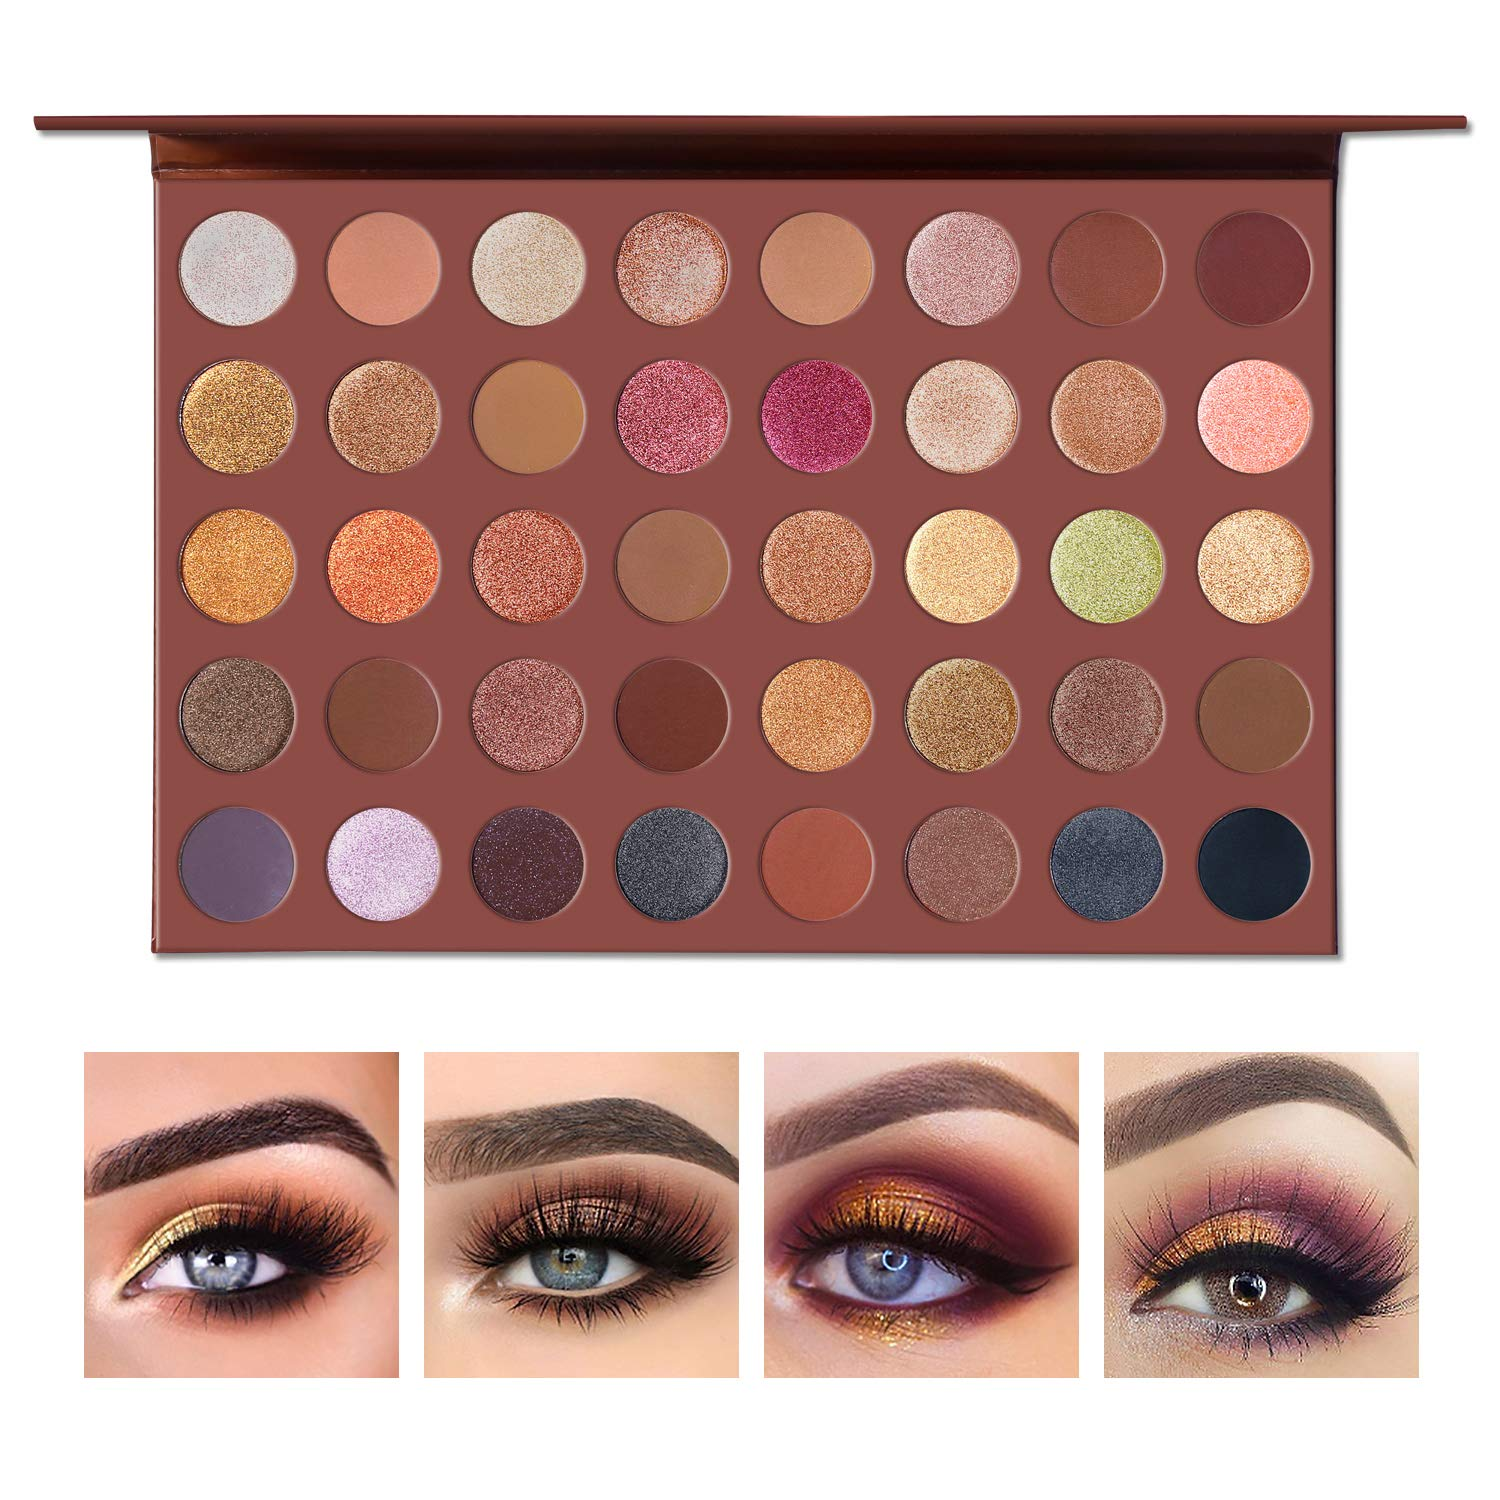 UCANBE Pro Choco Fusion Bronze Eyeshadow Makeup Palette, 40 Highly Pigmented Metallic Matte Shimmer Glitter Ultra Neutral Blendable Creamy Eye Shadow Pallet Set Kit by UCANBE